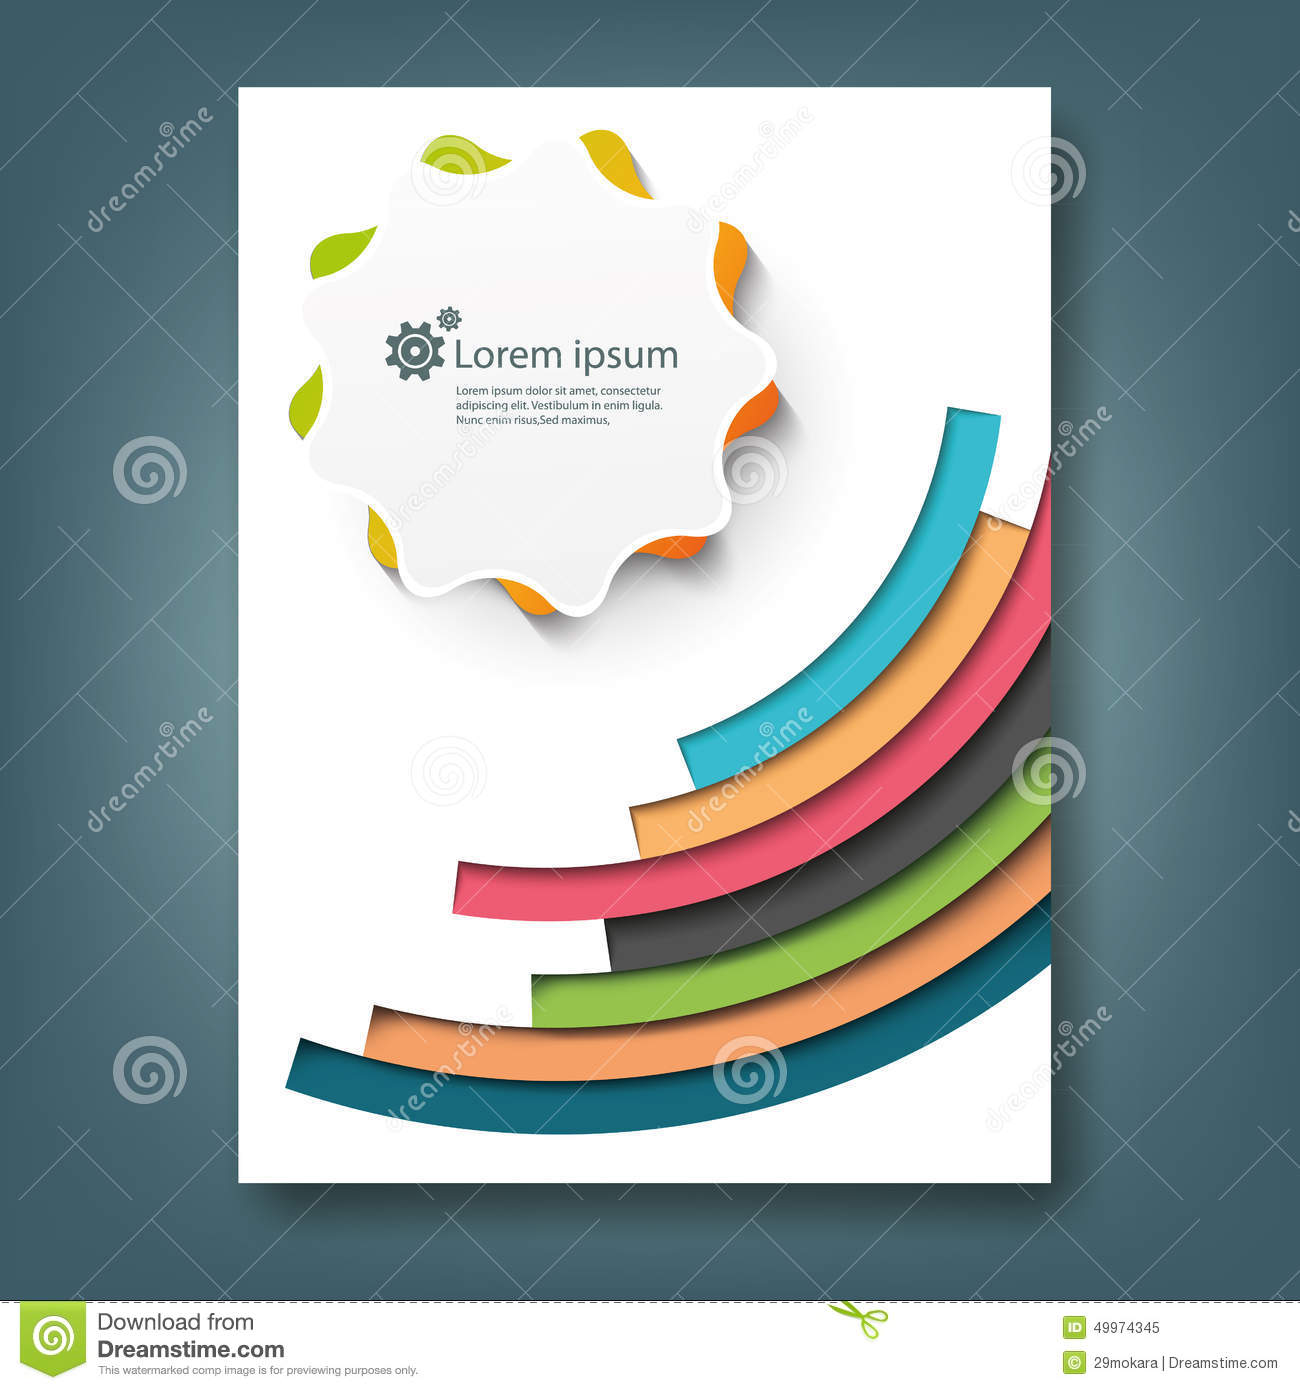 Book Cover Design Templates Free : Report and cover book template stock illustration image